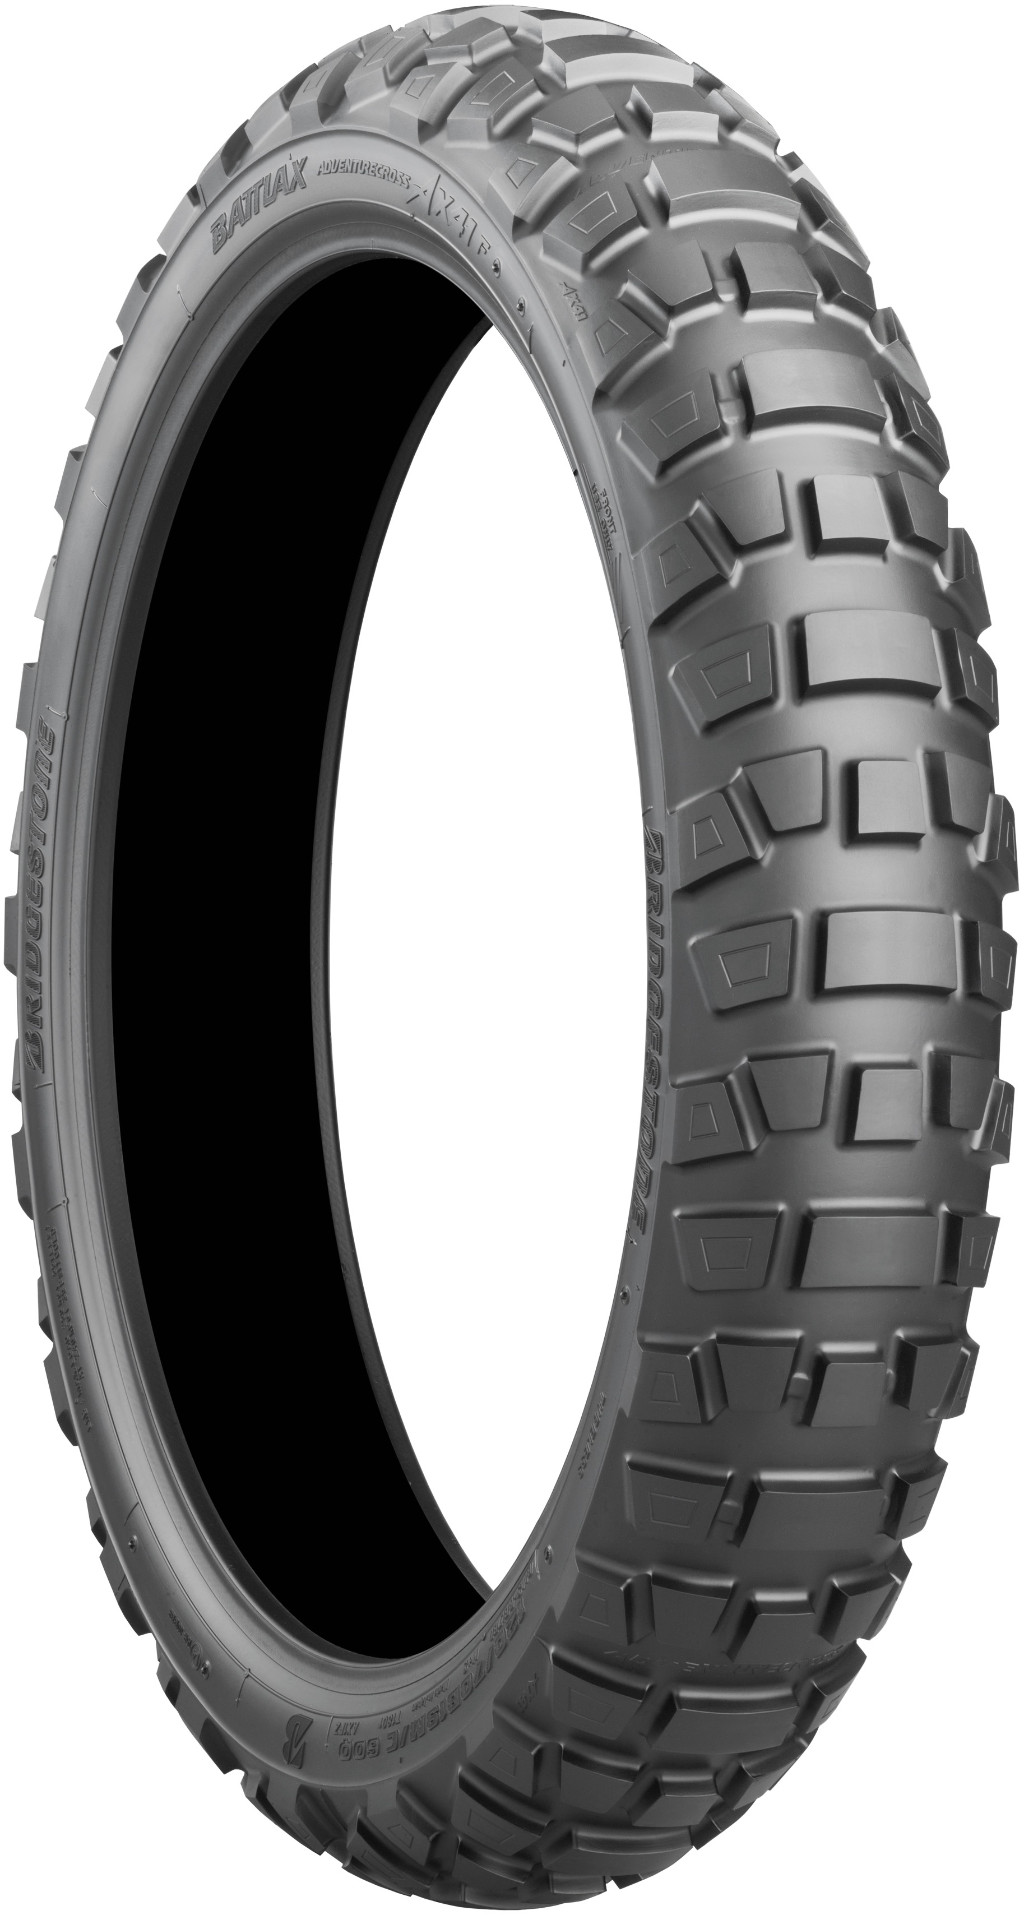 BRIDGESTONE BATTLAX ADVENTURECROSS AX41 [100/90-19M / C 57Q] BATTLAX Adventu